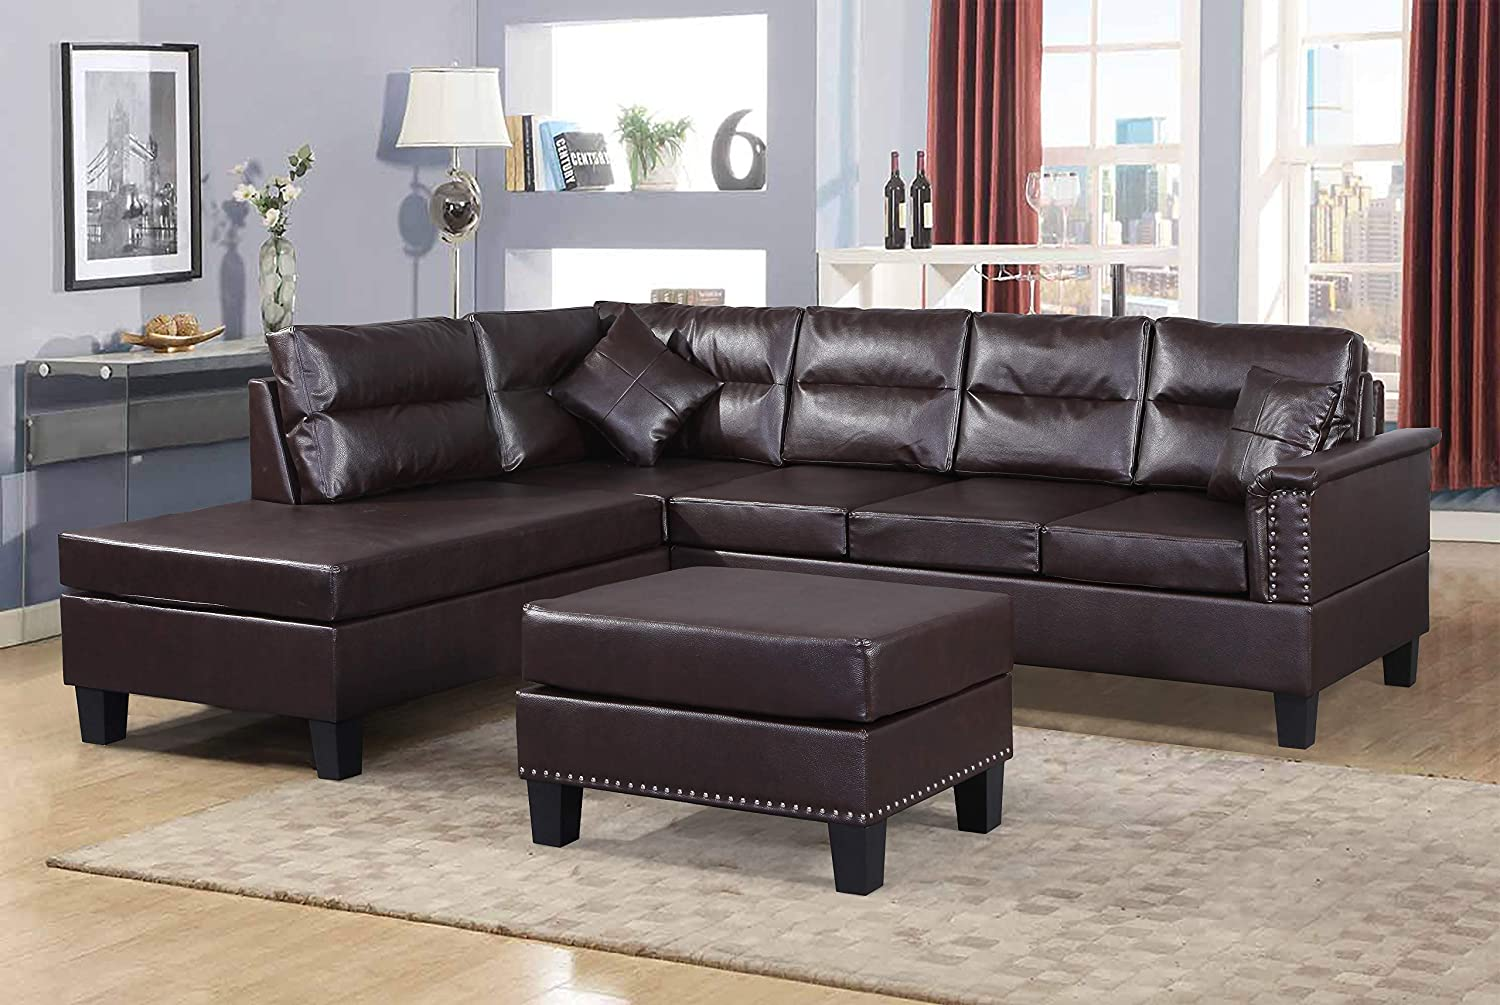 Harper & Bright Designs 3 Piece Sectional Sofa Set PU Leather Sofa Couches  Cushions Set with Ottoman for Living Room(Black Brown)